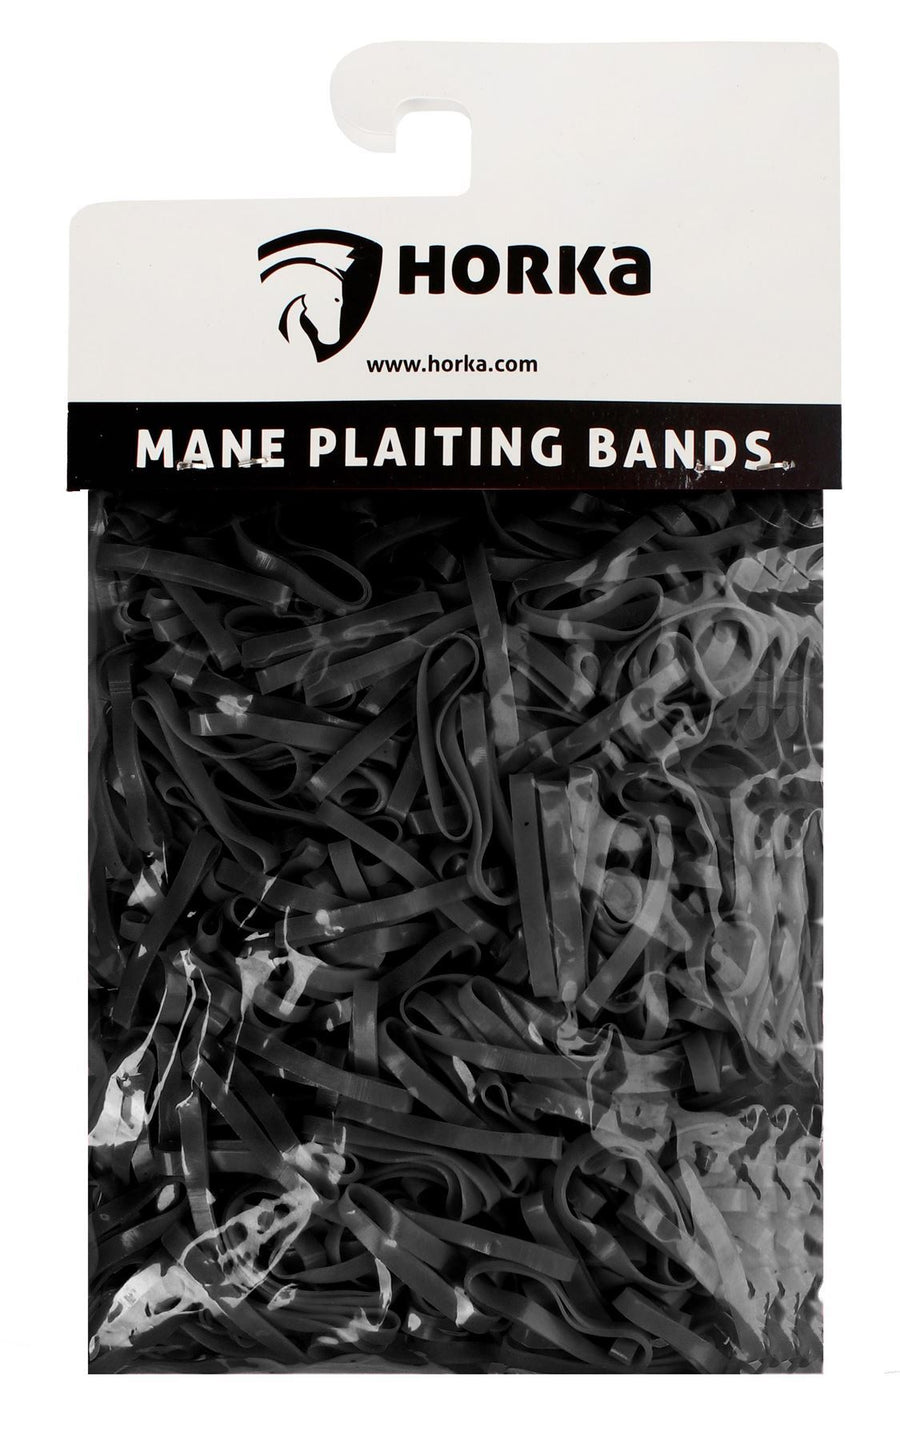 Horka Mane 'Plaiting Bands' Grooming Accessories Black